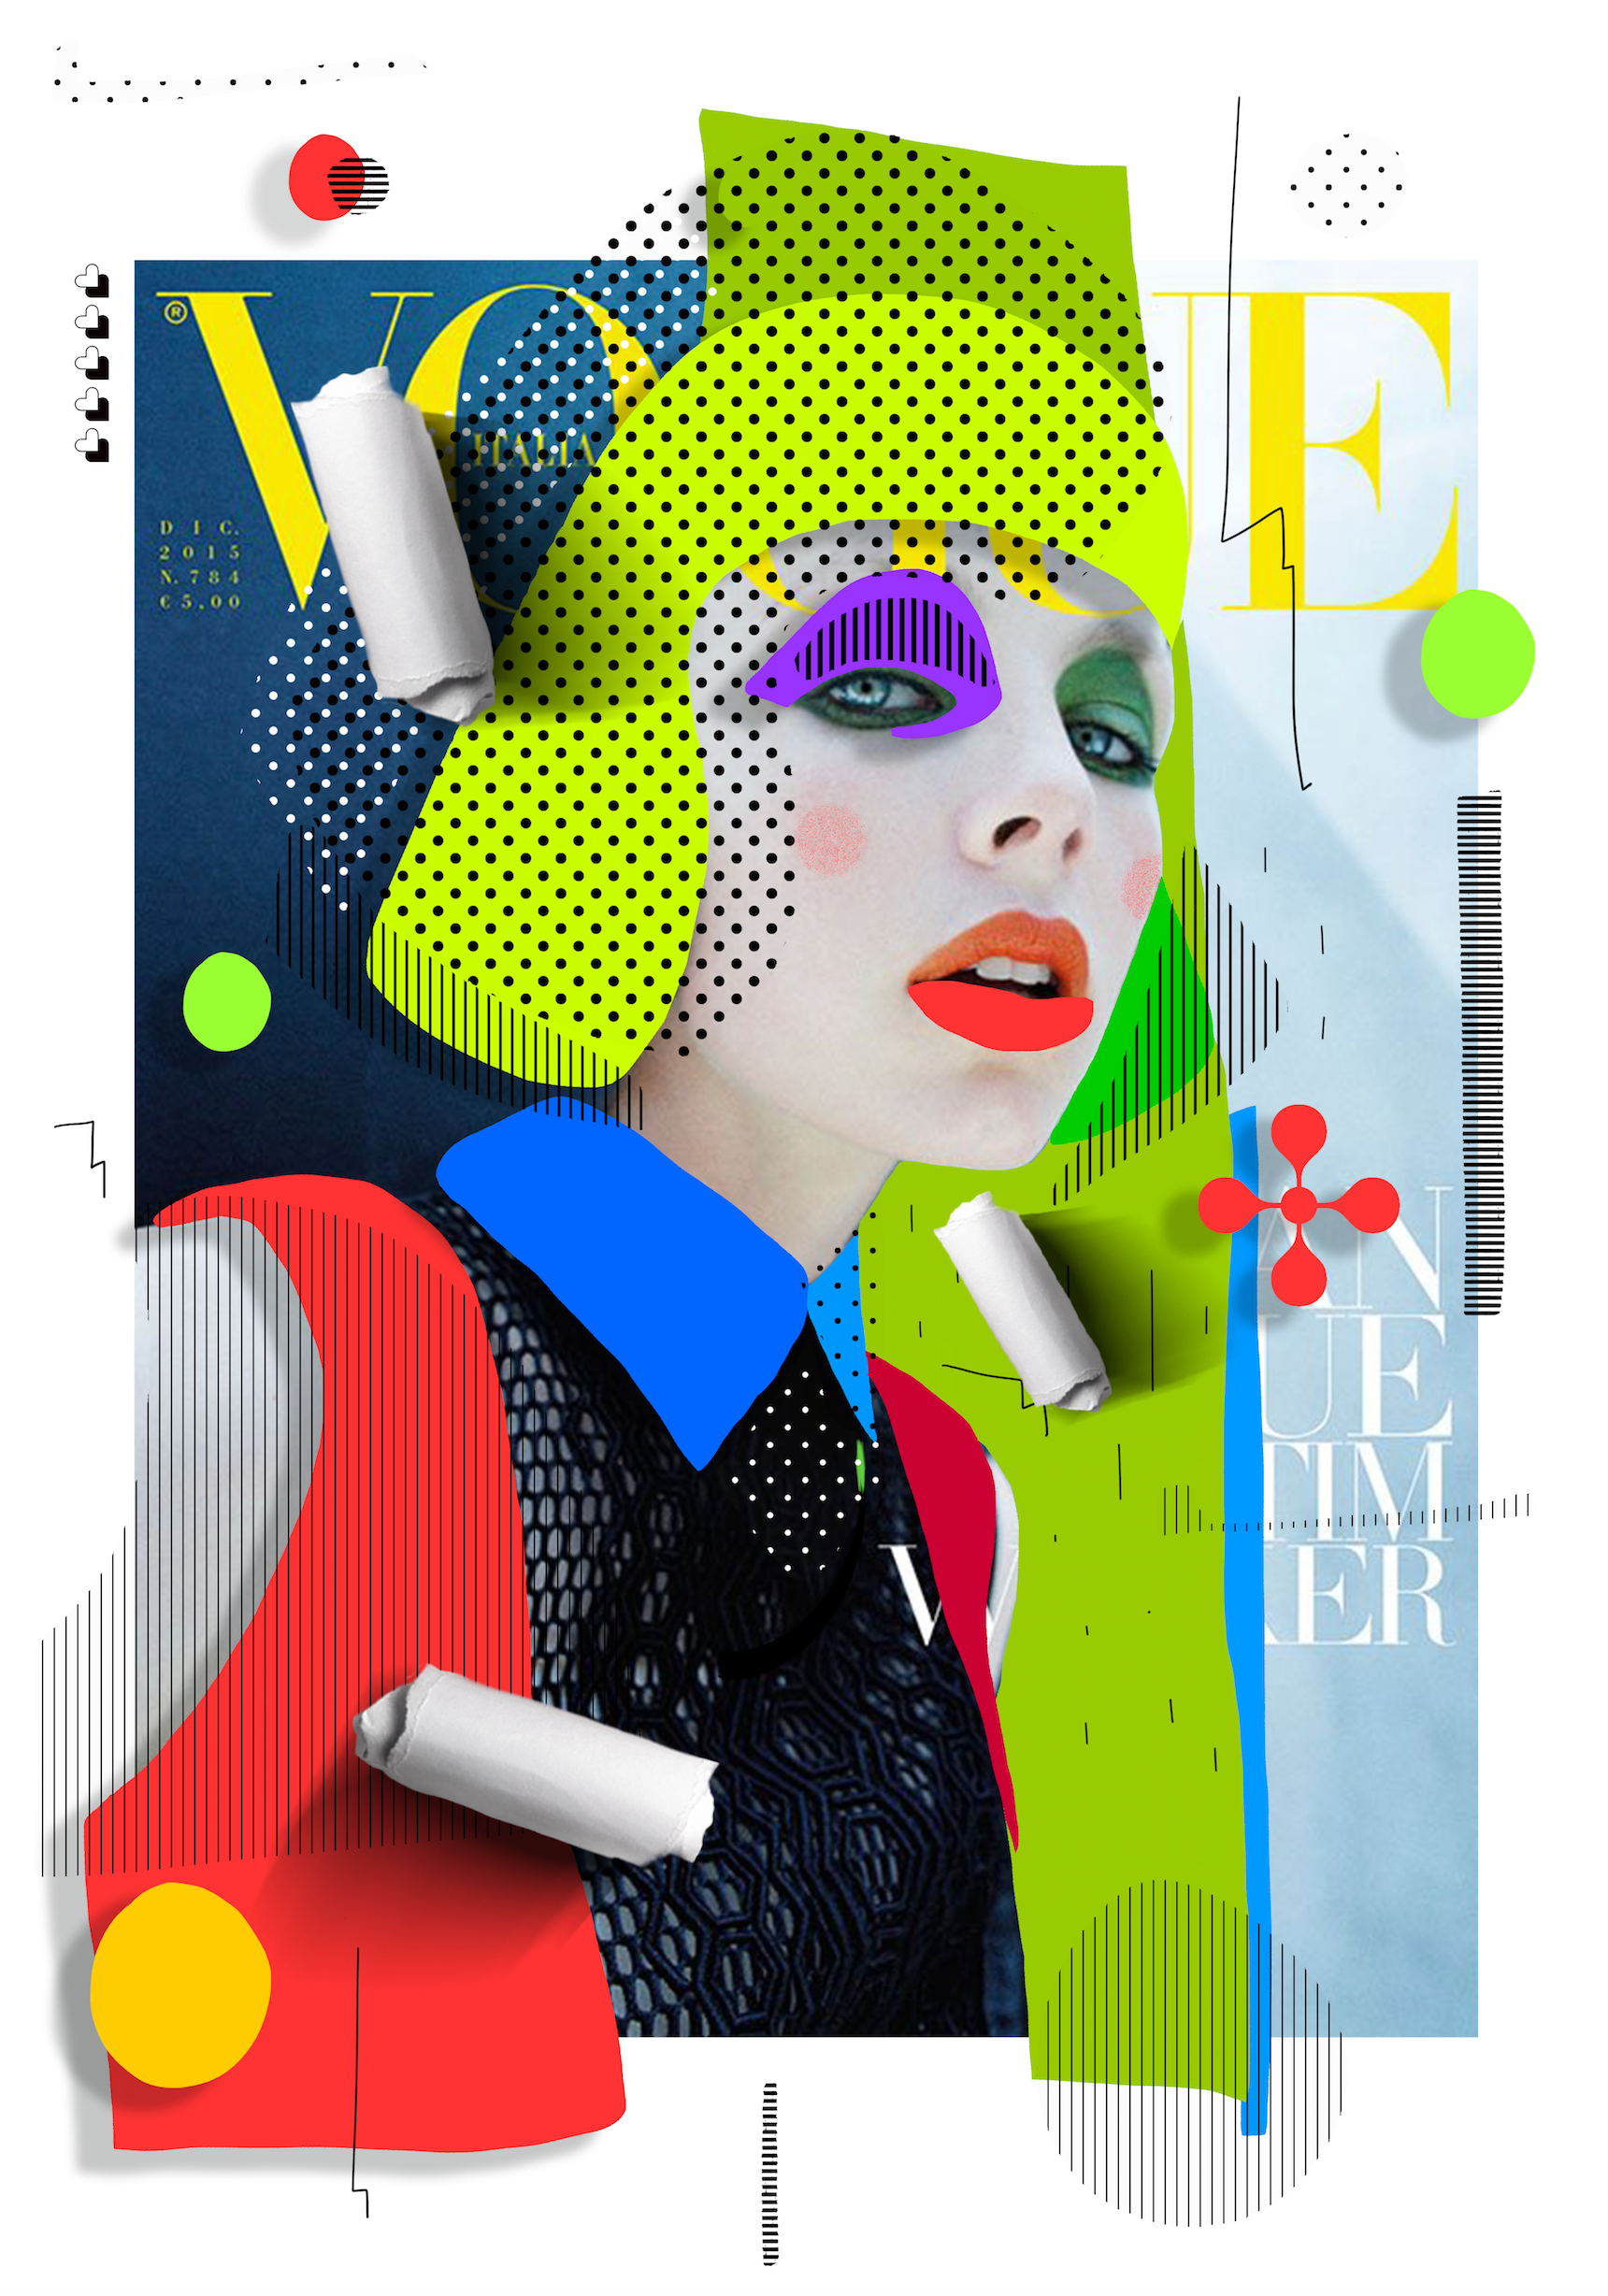 Check Out This Behance Project Cheek To Cheek Https Www Behance Net Gallery 59182007 Cheek To Cheek Collage Design Graphic Poster Photoshop Design